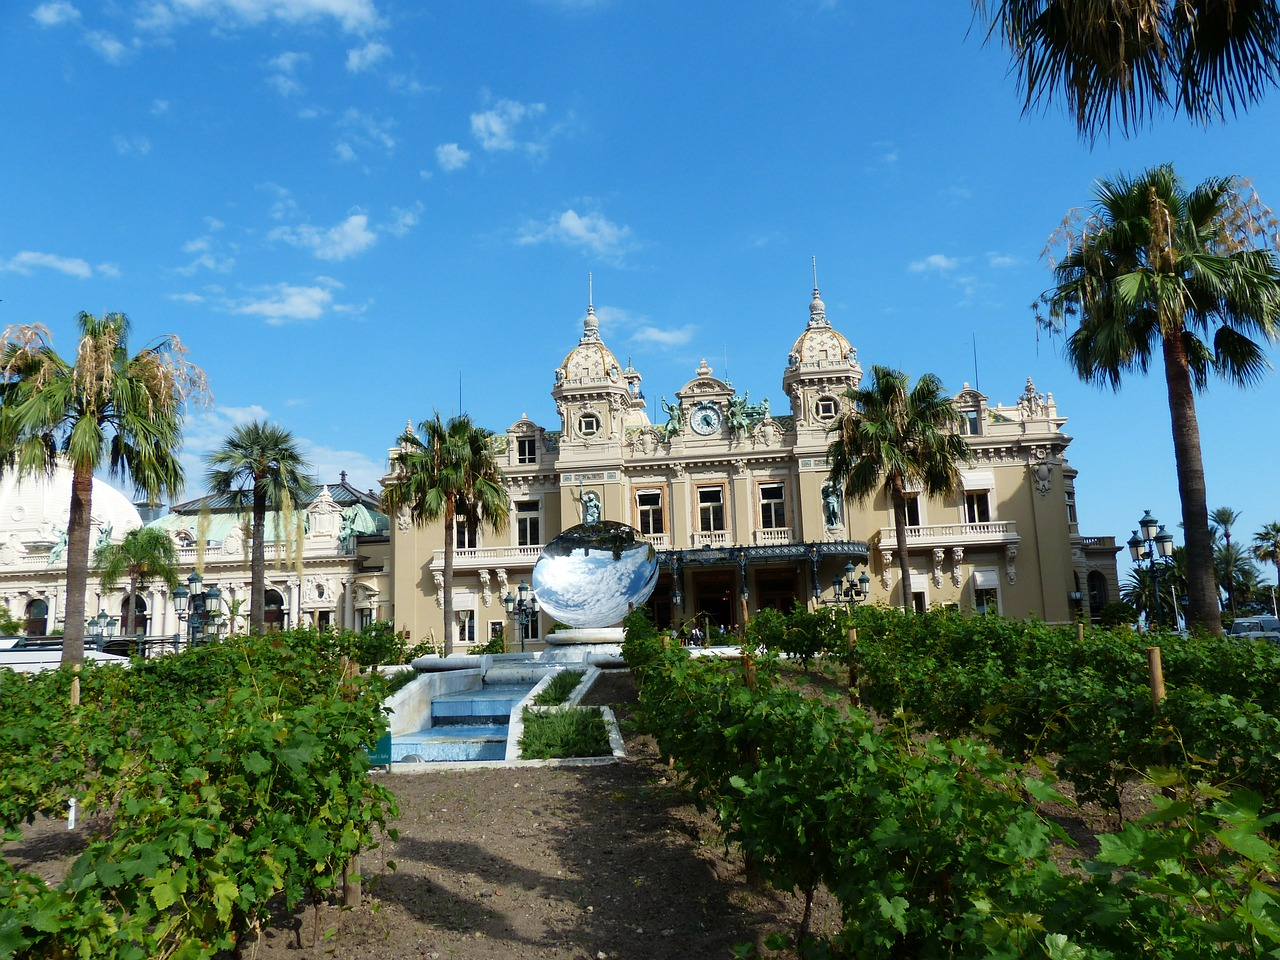 game bank casino monte carlo free photo